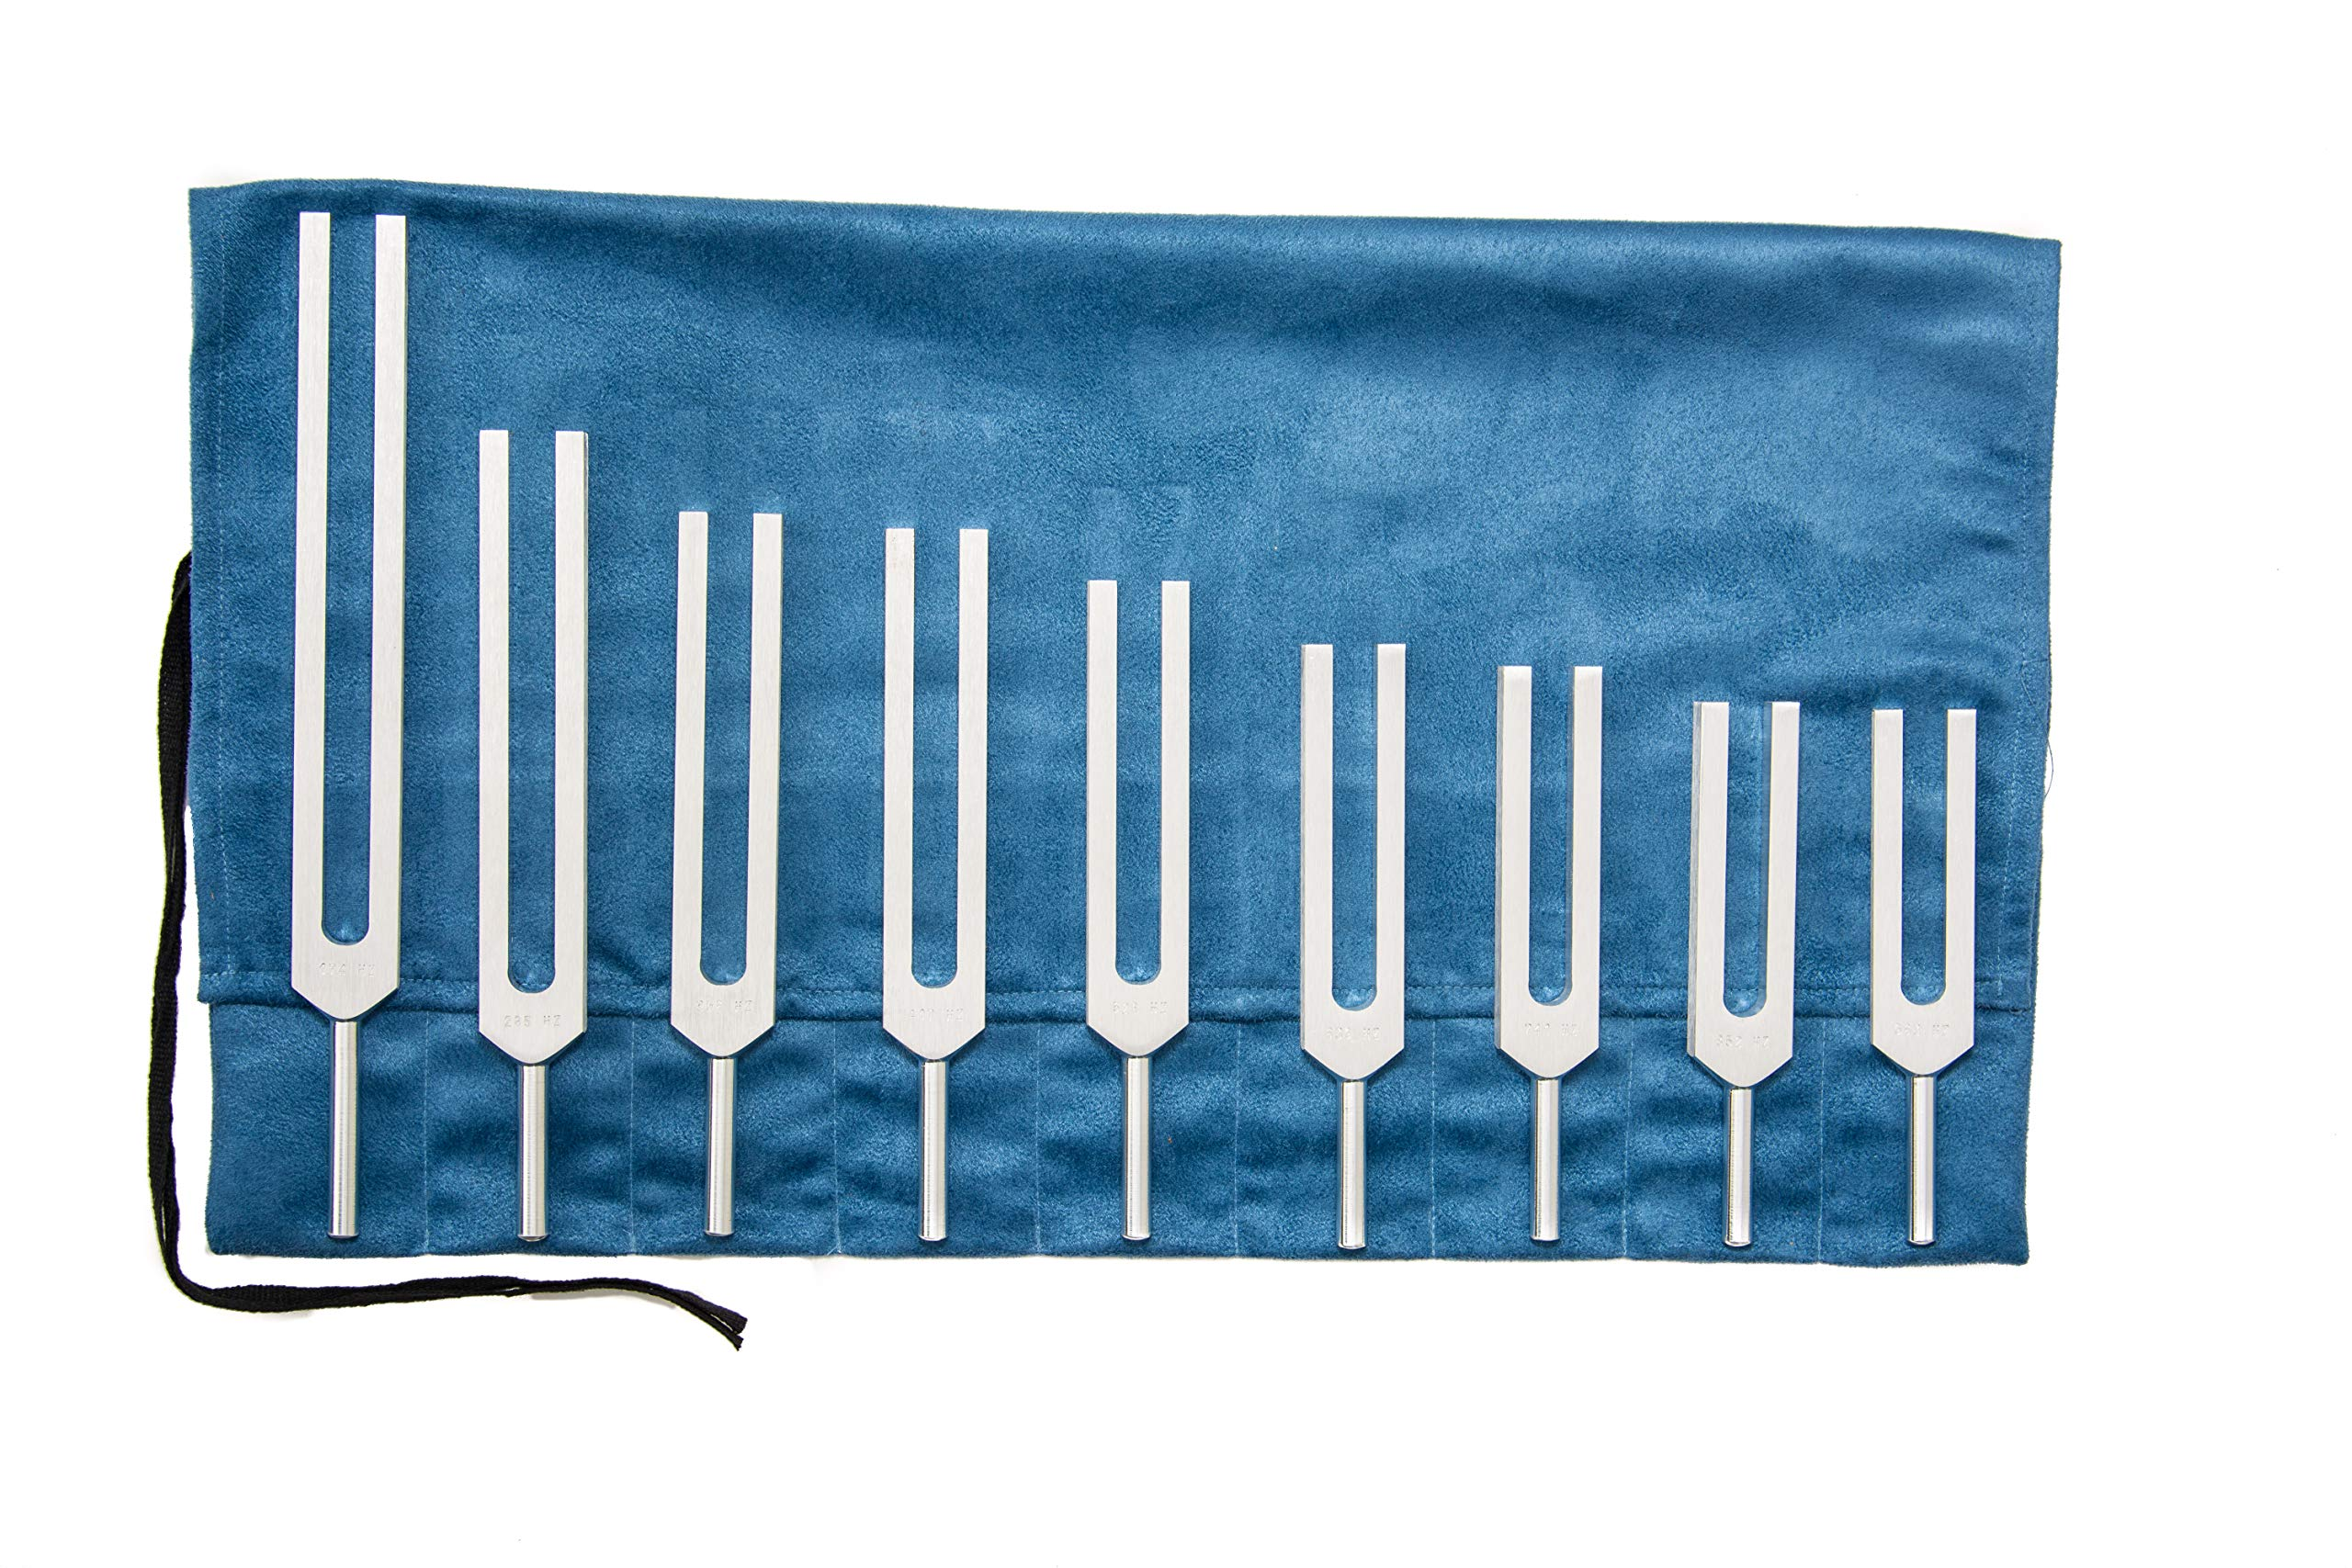 Solfeggio Tuning Fork Set with Bag by Omnivos